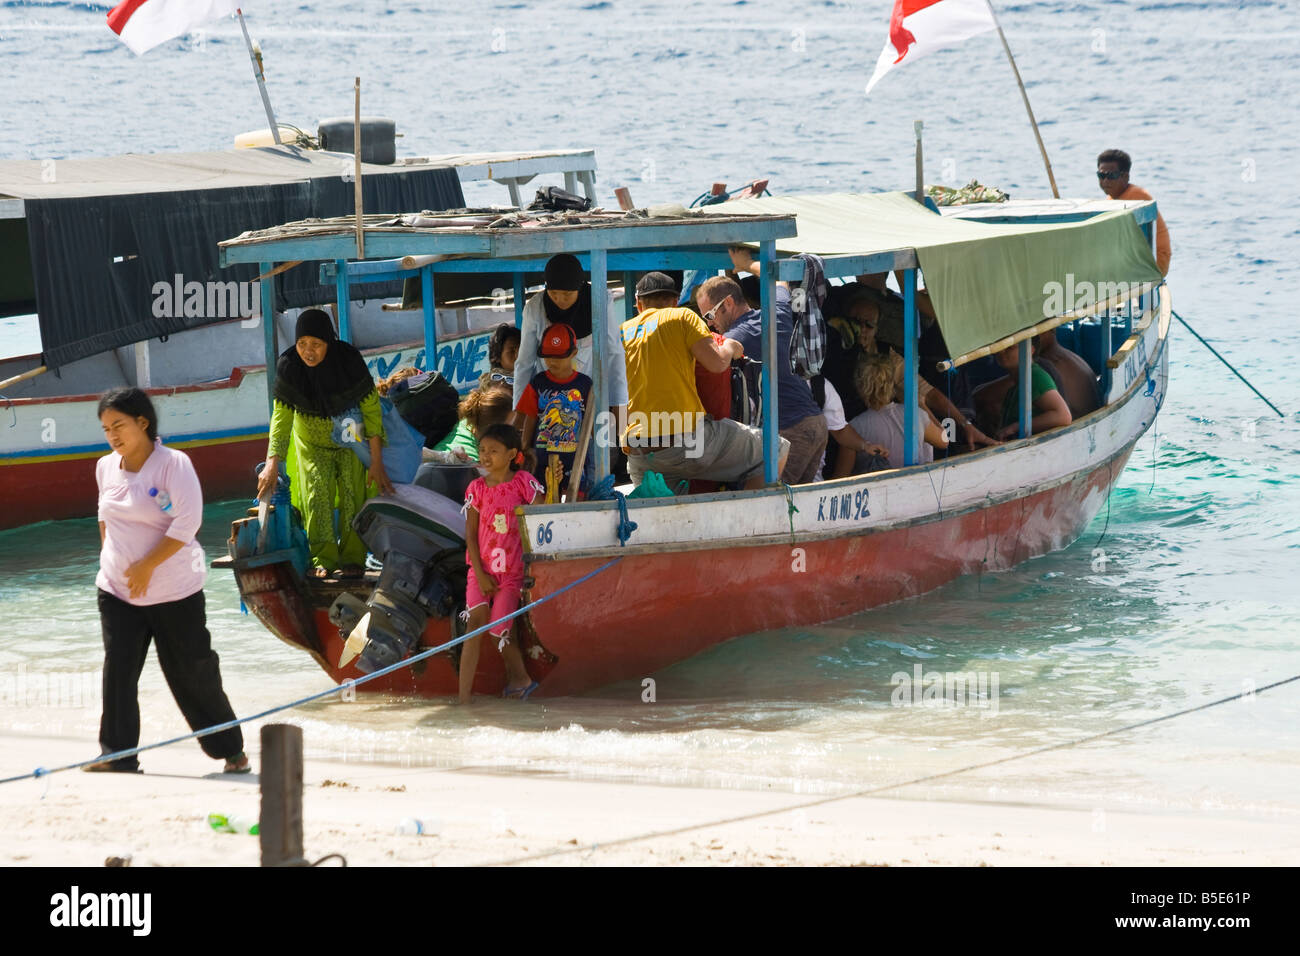 Ferryboat Unloading on Gili Trawangan in Lombok Island Indonesia Stock Photo